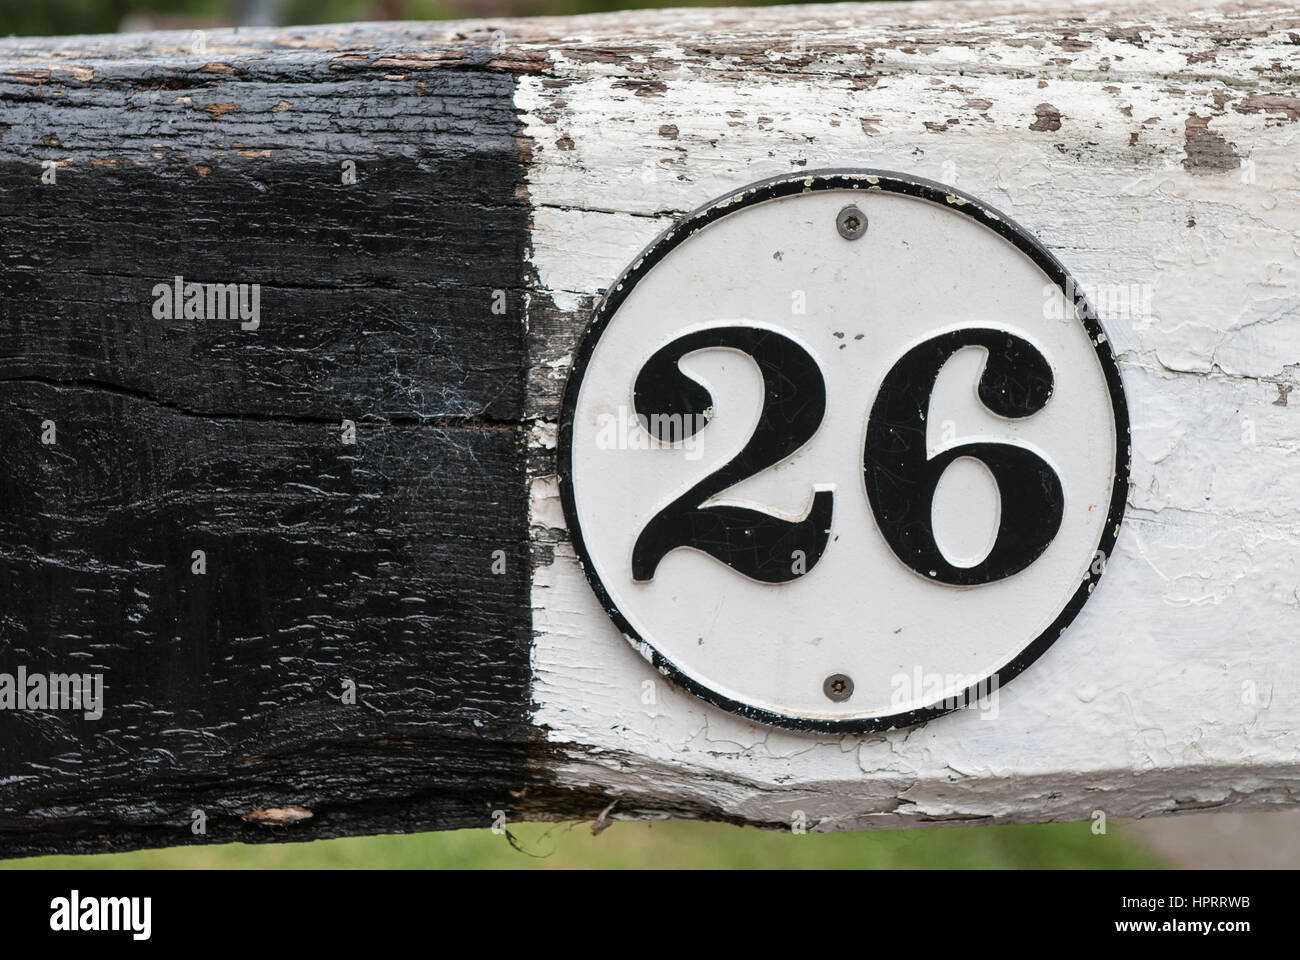 The number 26 black on white in a circular border painted against a white and black wooden background. - Stock Image